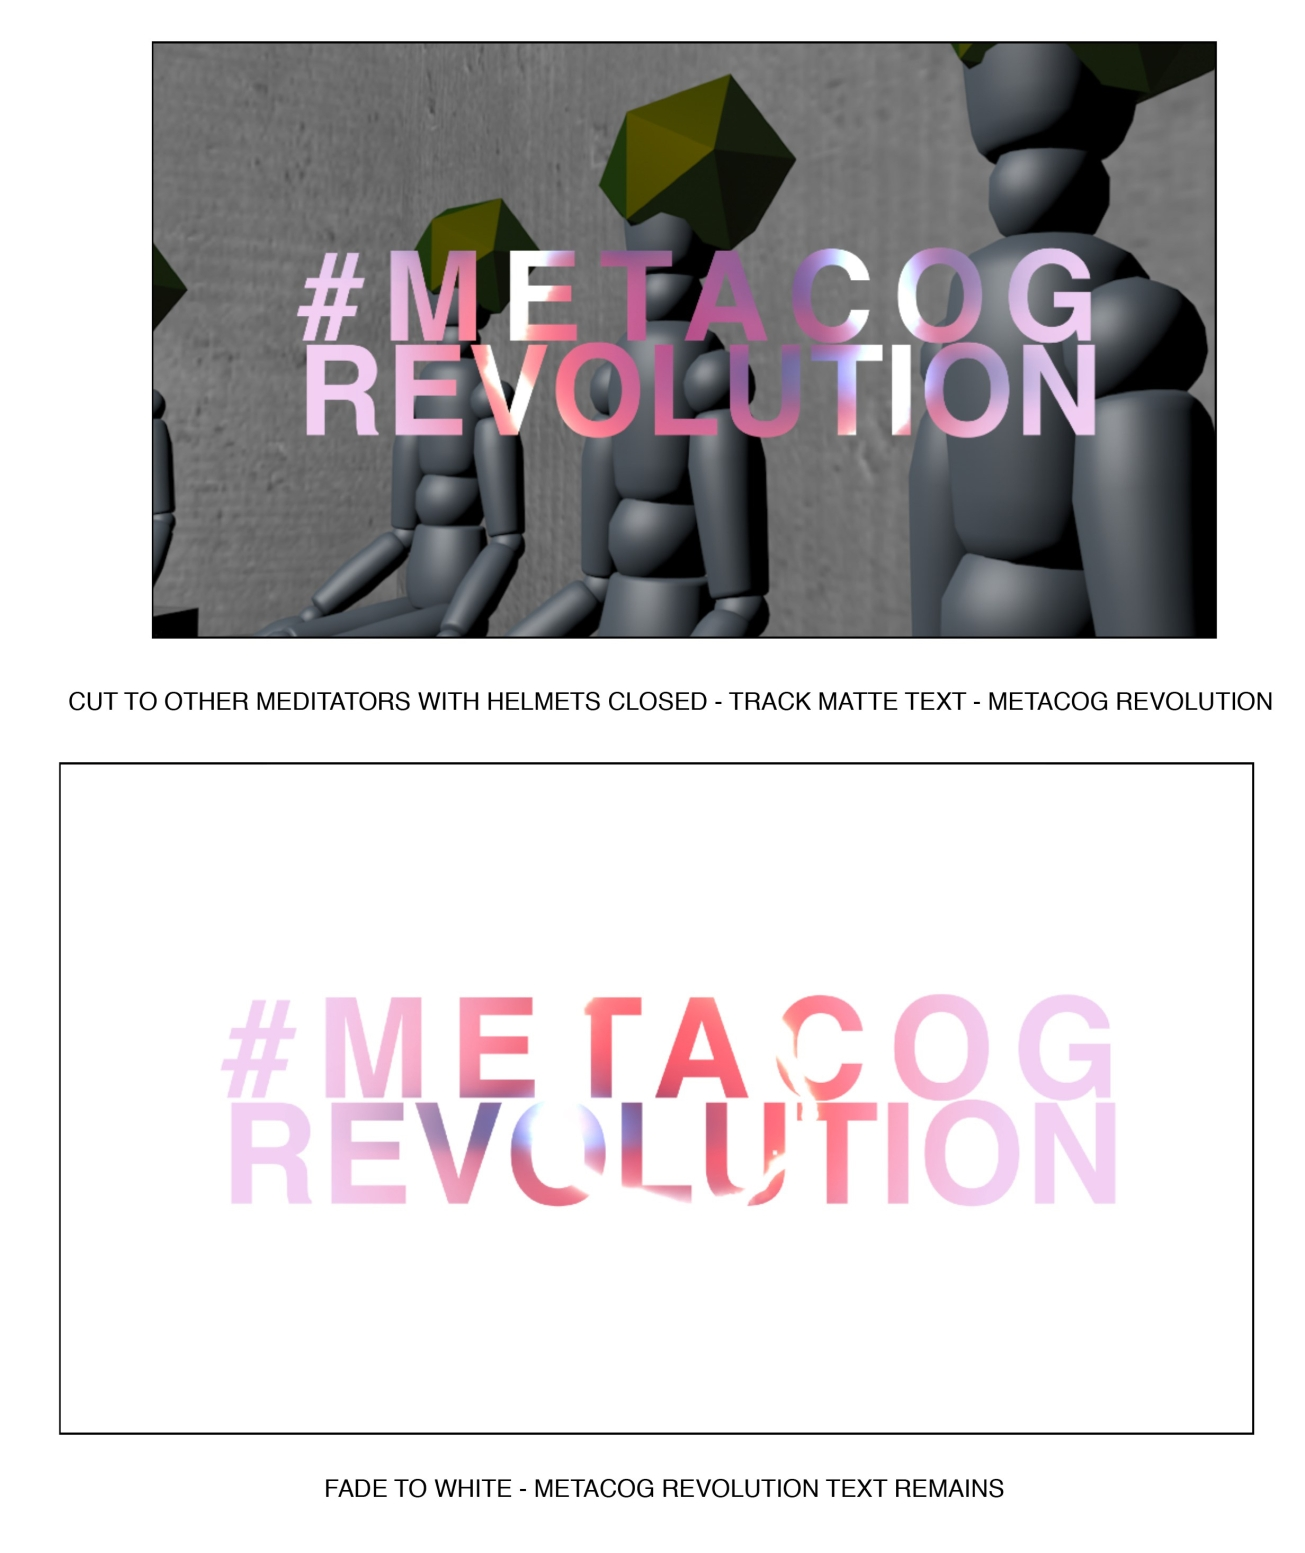 metacog-storyboard-12.jpg